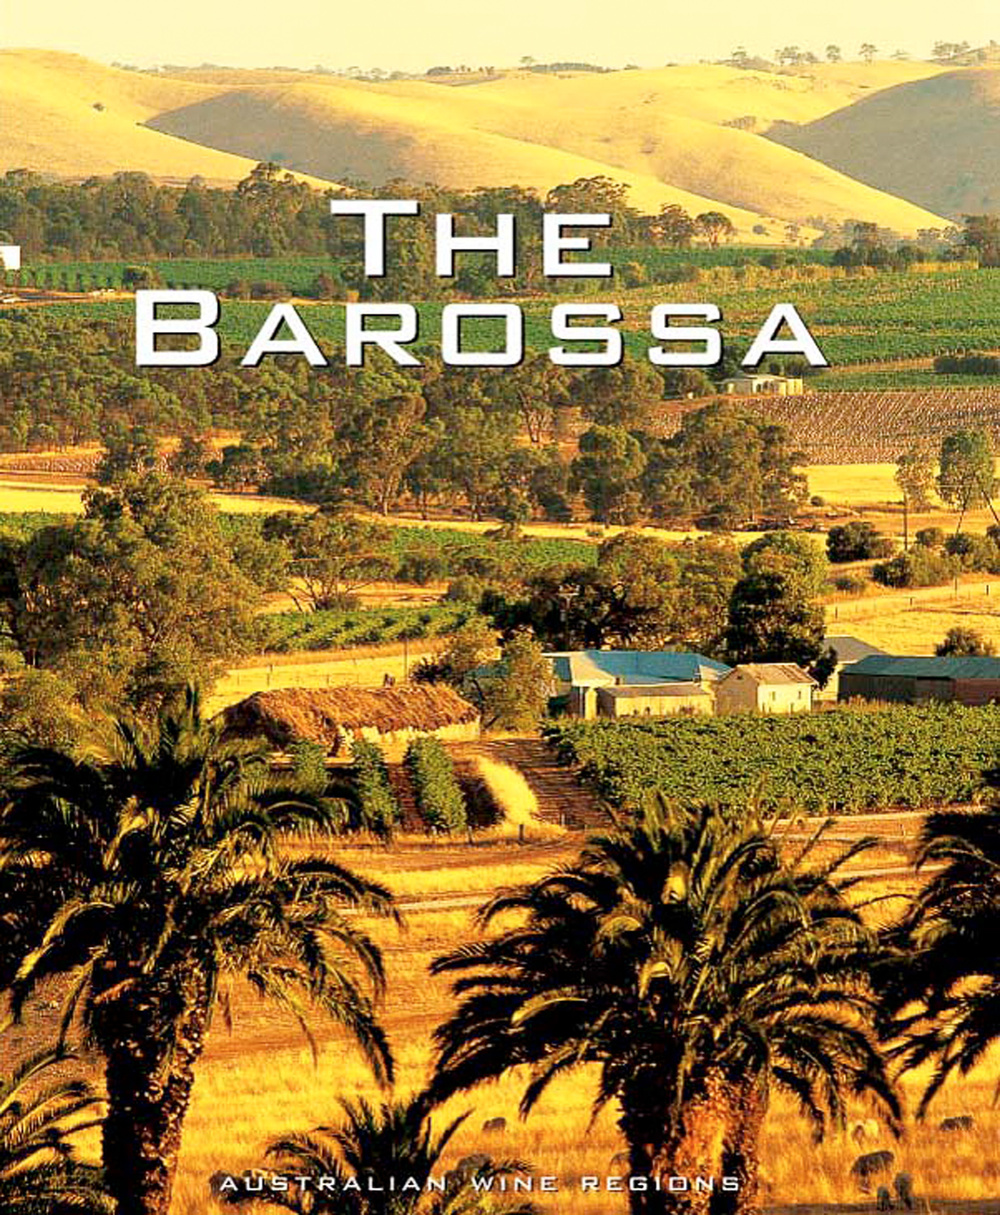 The-Barossa-3x3.6in-200dpi.jpg